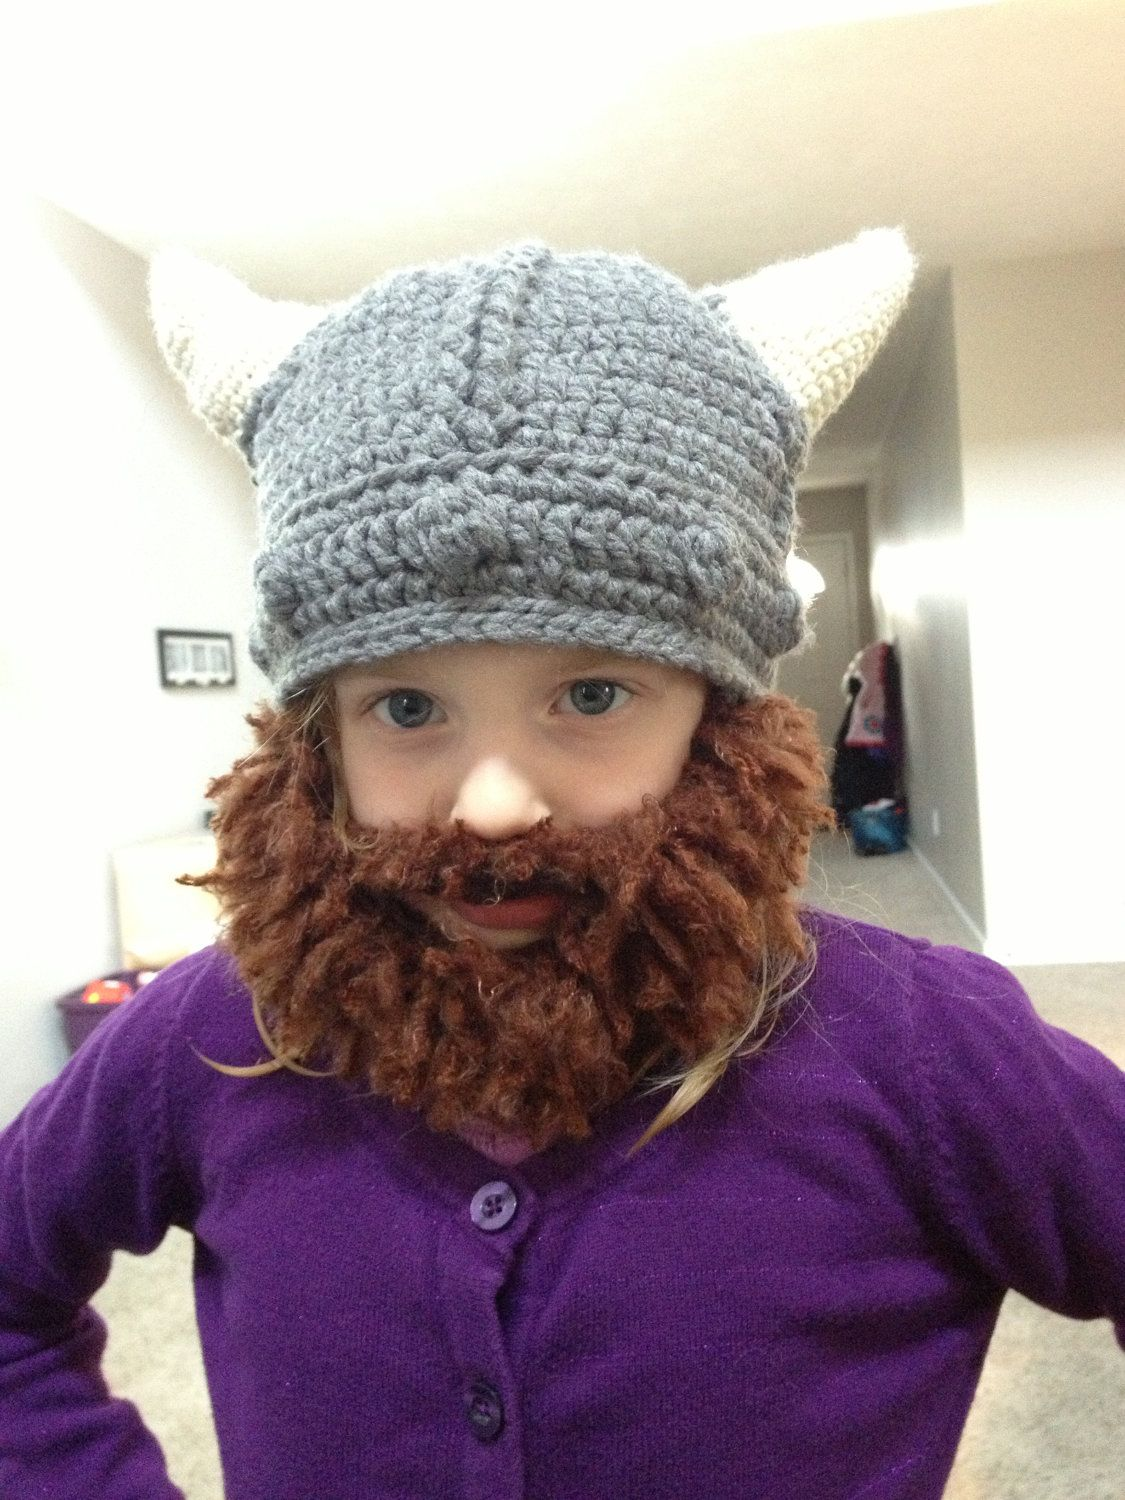 Fuzzy Beard Crochet Viking hat. | Clothing | Pinterest | Gorros ...